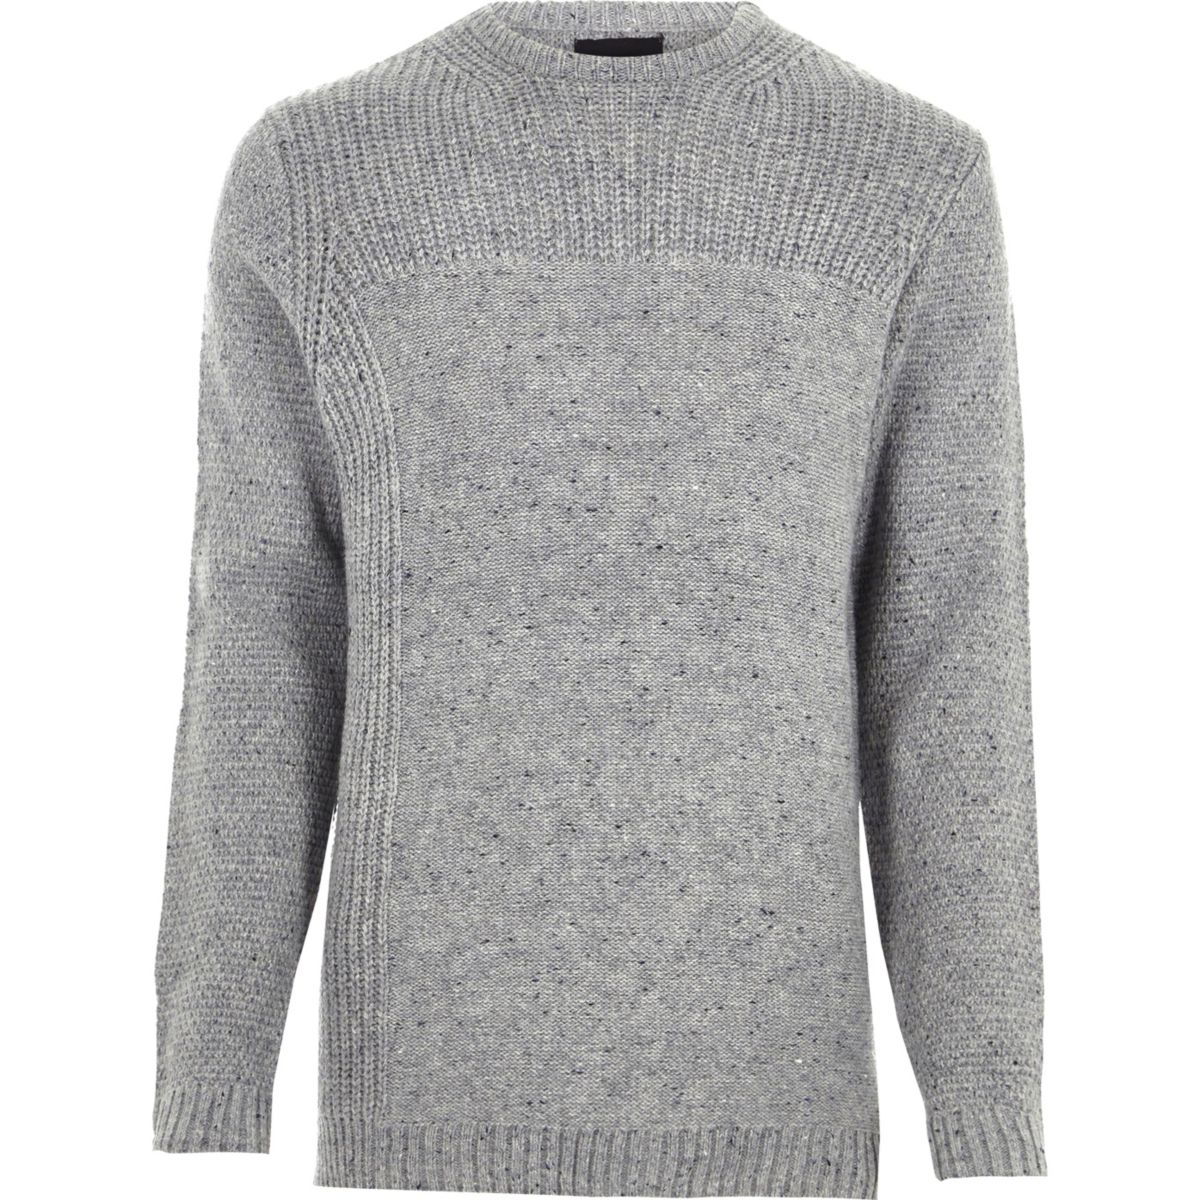 Grey mixed texture knit crew neck jumper